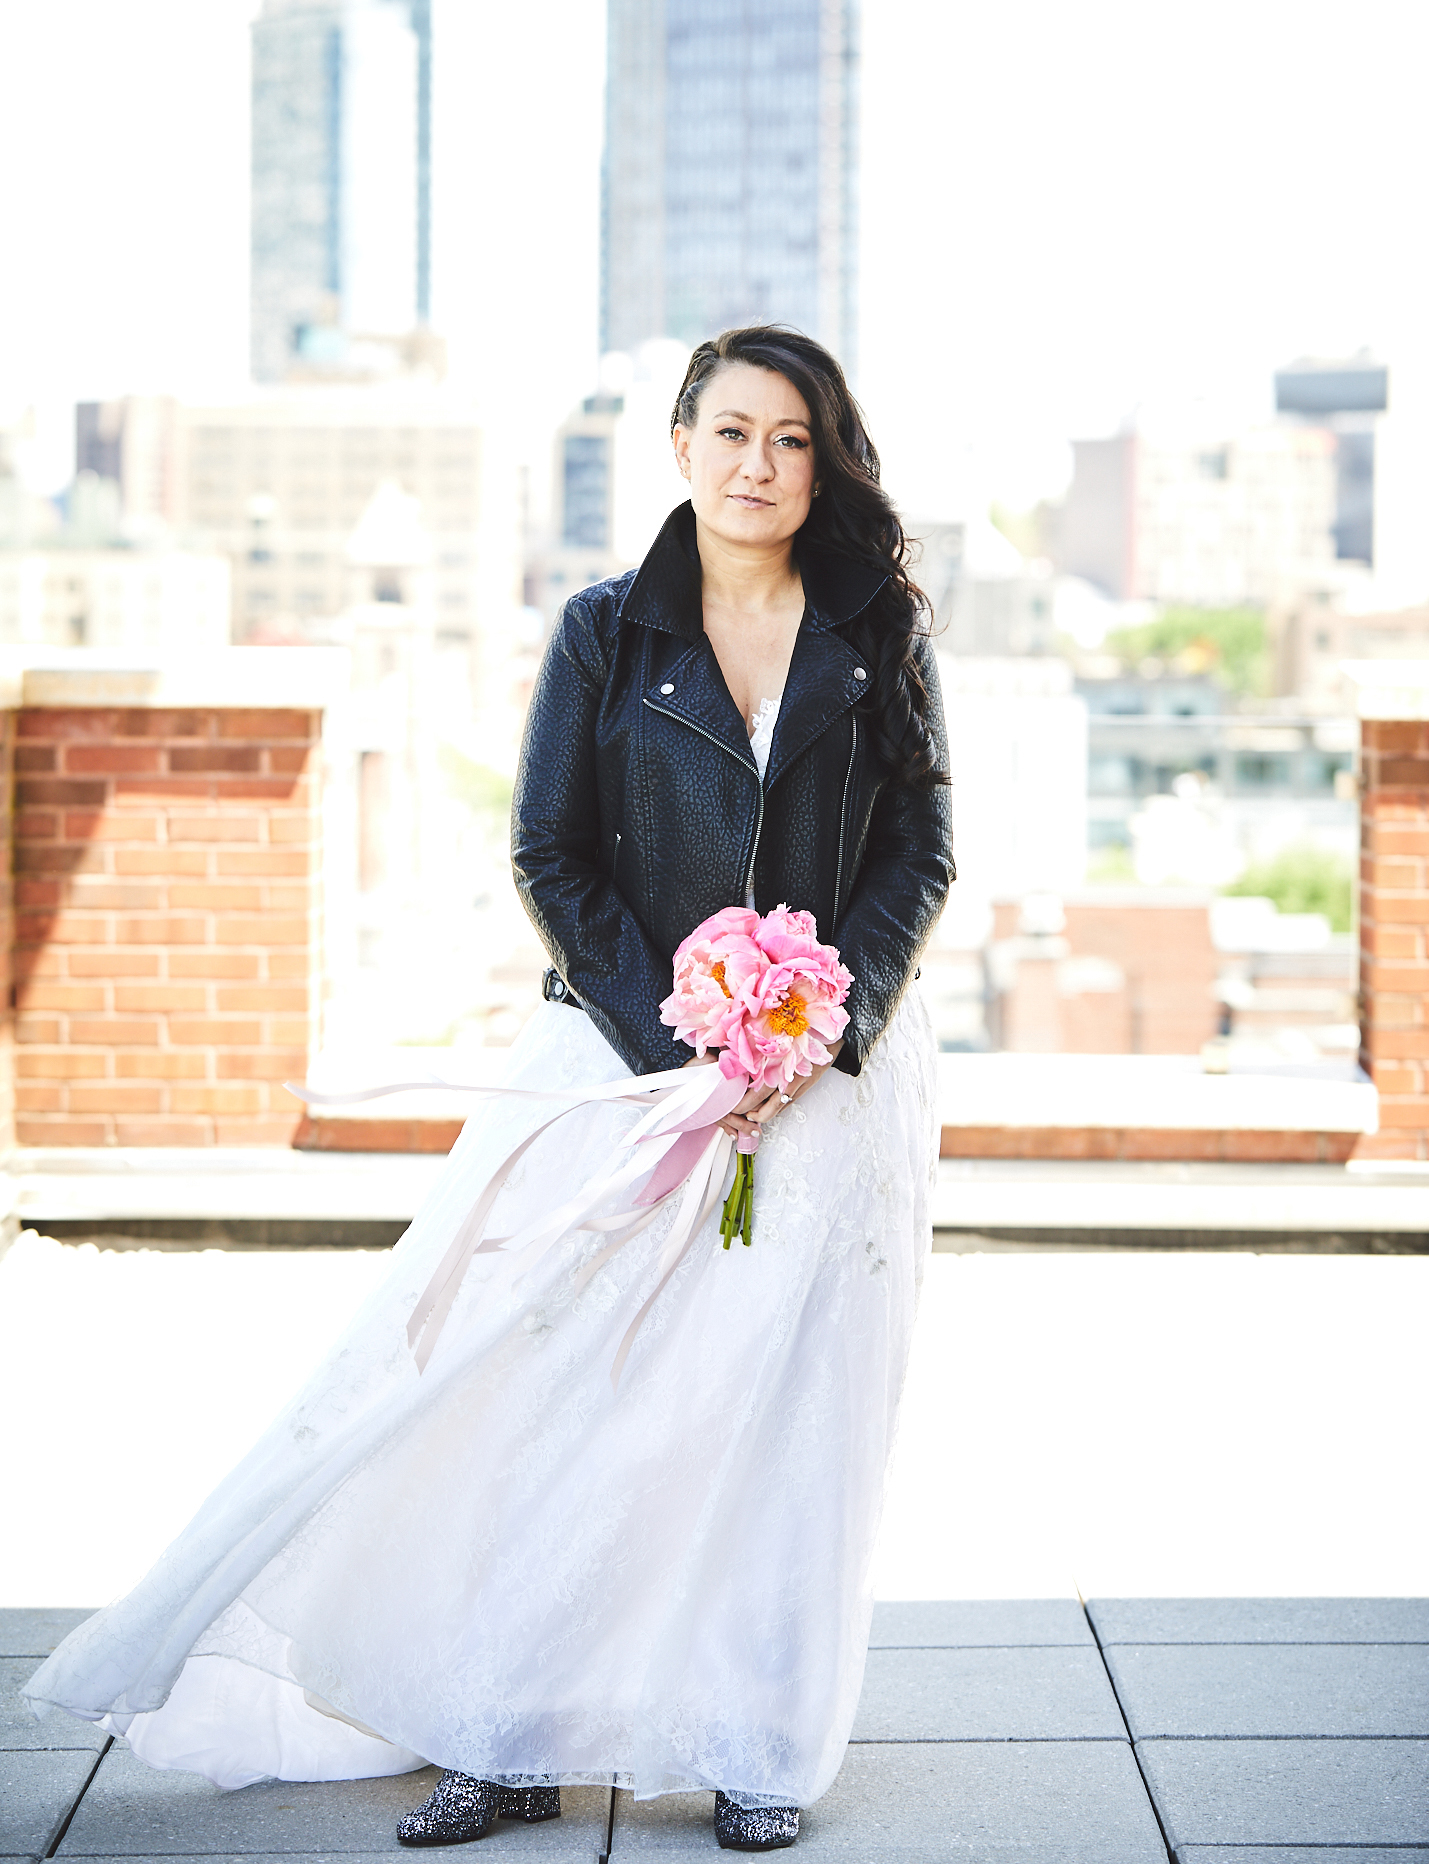 190518_SpringThreesBreweryWedding_By_BriJohnsonWeddings_0057.jpg